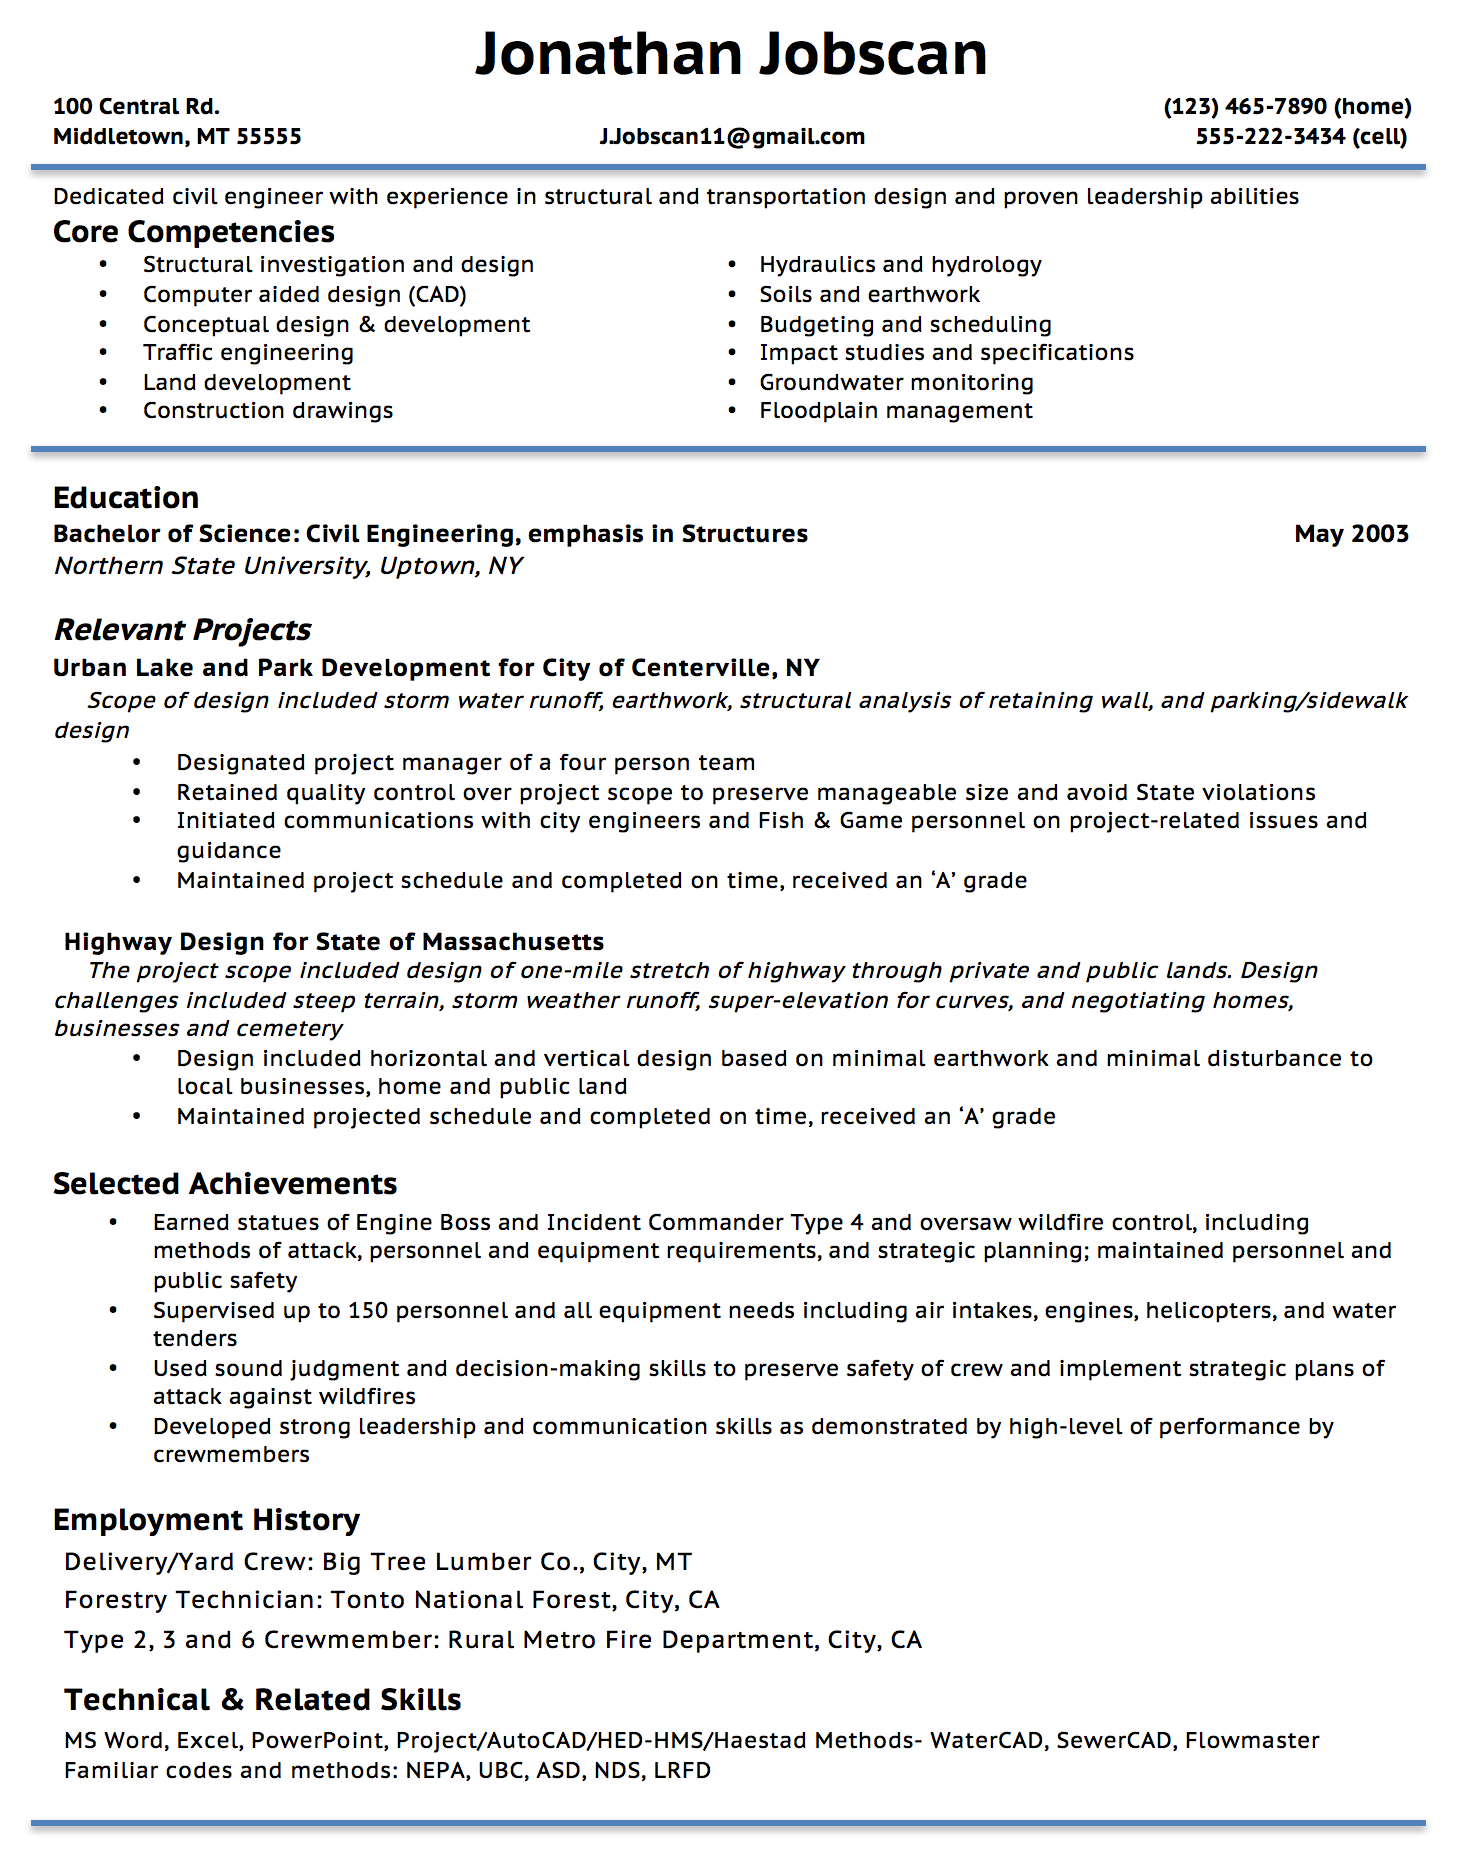 Opposenewapstandardsus  Scenic Resume Writing Guide  Jobscan With Exquisite Example Of A Functional Resume Format With Beauteous References On Resume Examples Also Microsoft Office On Resume In Addition Instructional Assistant Resume And How To Write Resume With No Experience As Well As Optometrist Resume Additionally Electronics Technician Resume From Jobscanco With Opposenewapstandardsus  Exquisite Resume Writing Guide  Jobscan With Beauteous Example Of A Functional Resume Format And Scenic References On Resume Examples Also Microsoft Office On Resume In Addition Instructional Assistant Resume From Jobscanco